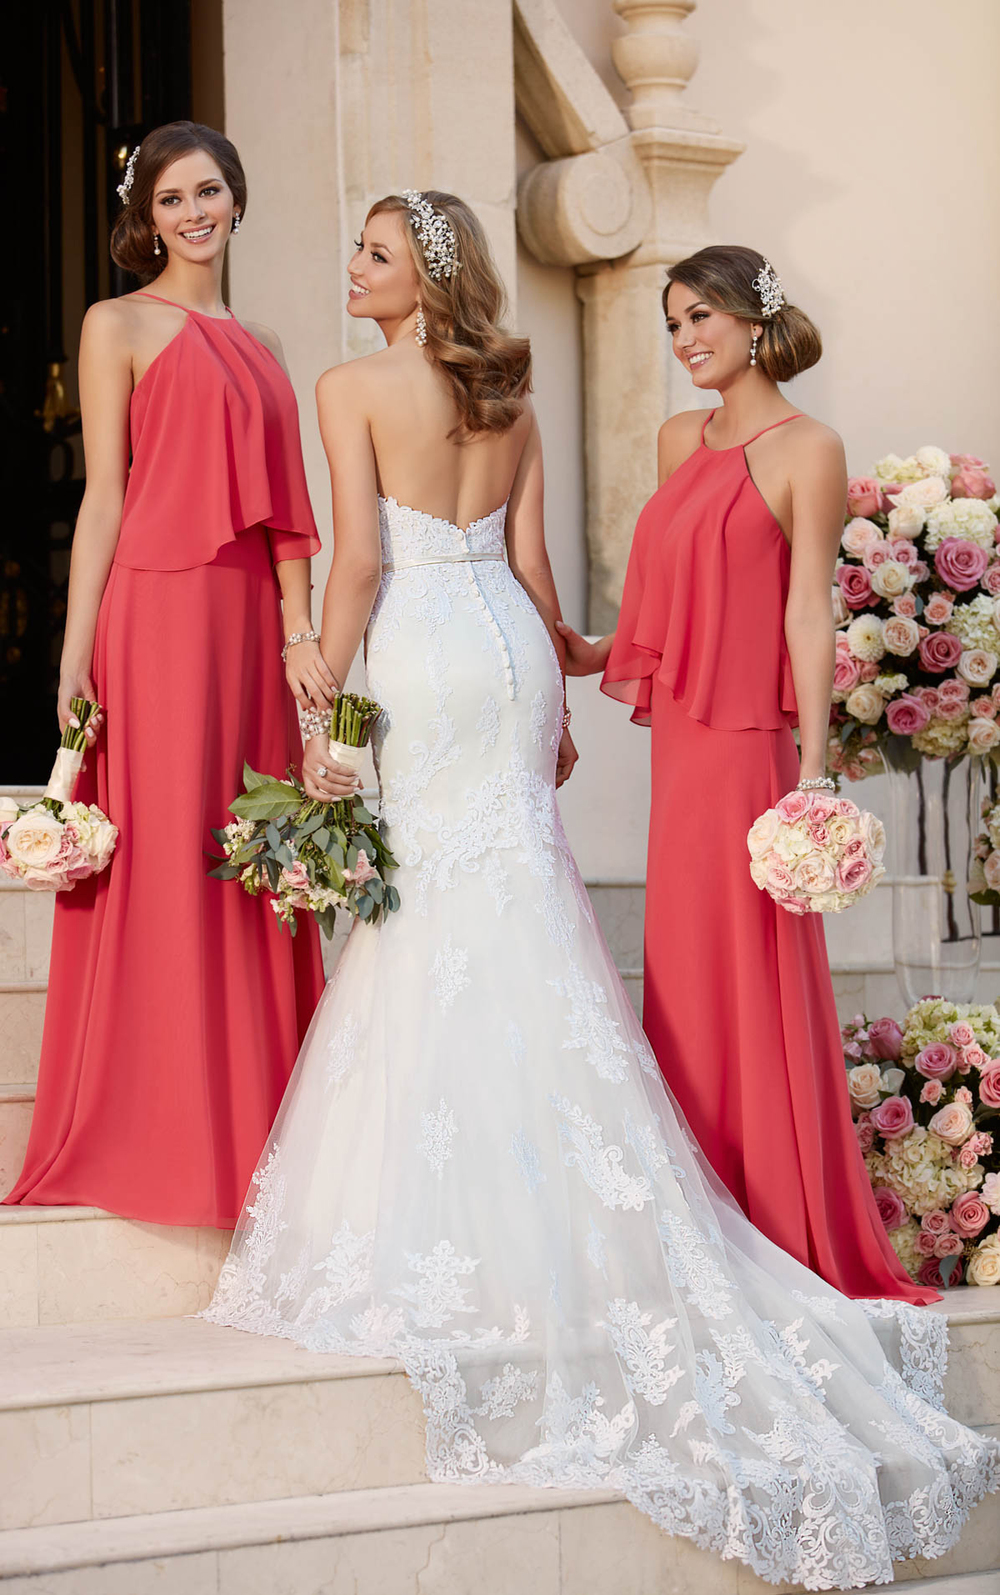 Stella York Bridal Fall 2016 Sorella Vita Bridesmaids